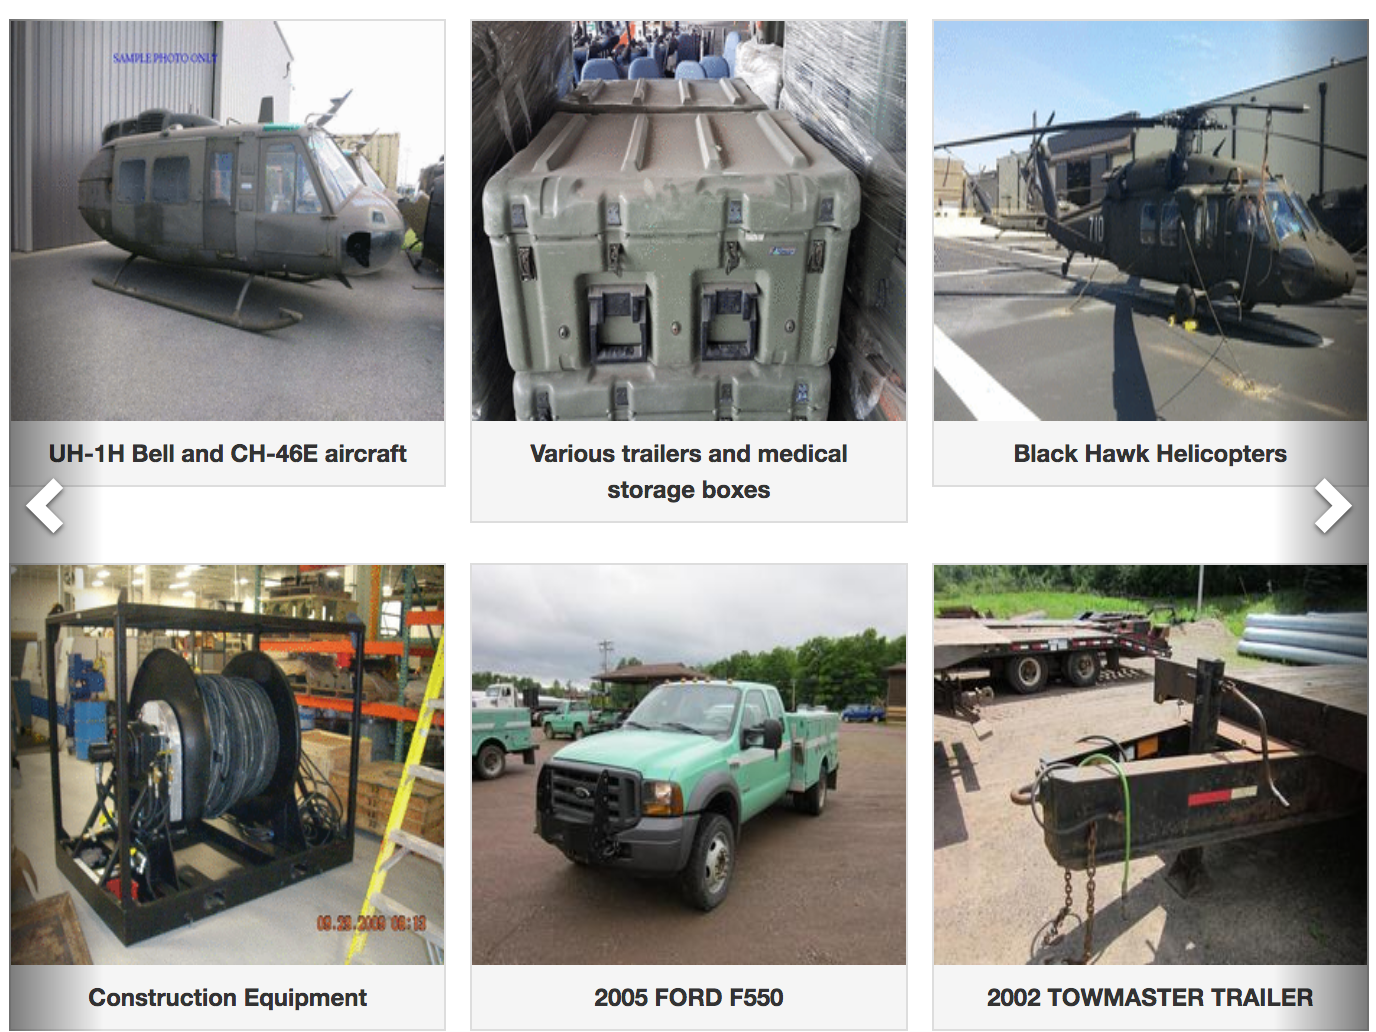 Six examples of things you can buy from a government auction, such as a pickup truck, helicopters, and medical storage boxes